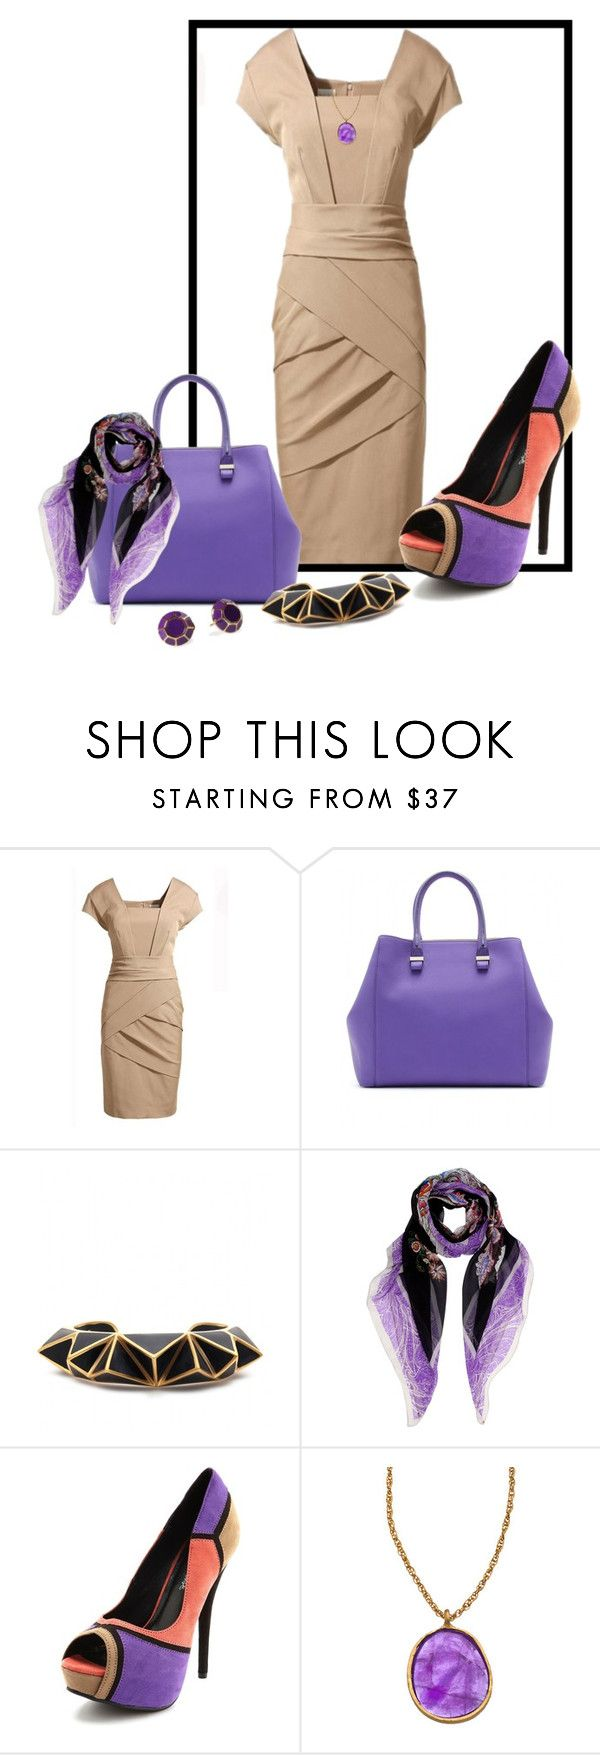 """""""Purple Passion"""" by mz-happy ❤ liked on Polyvore featuring Victoria Beckham, Isharya, Etro, Charlotte Russe, Kate Spade and PIARA by Elaine J"""